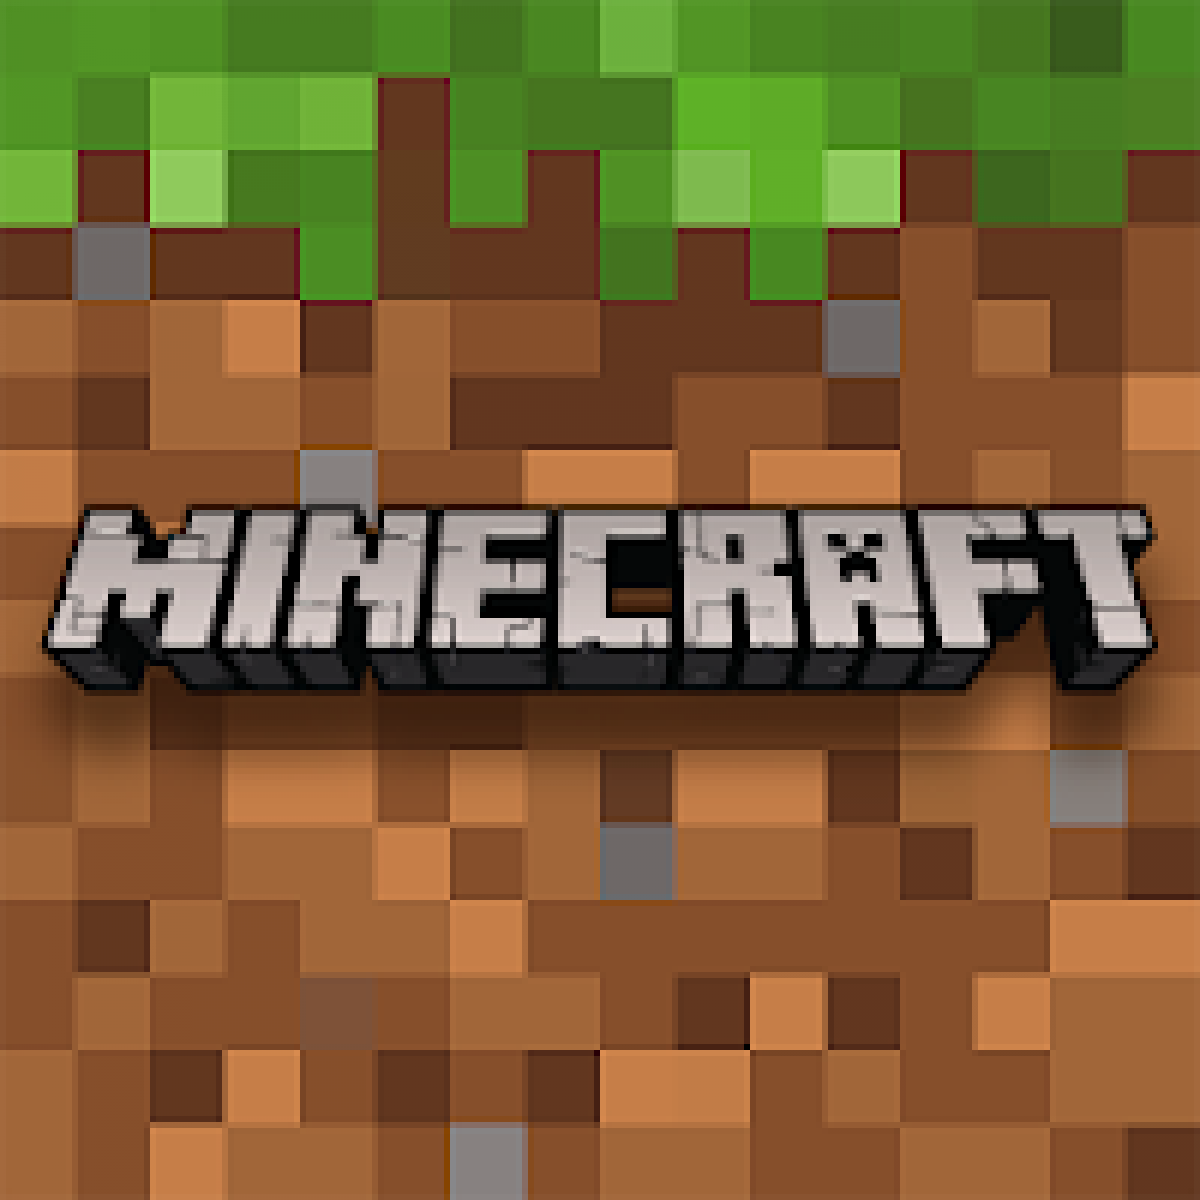 Minecraft Mod Apk 1 16 210 58 Download Immortality Unlocked Free For Android